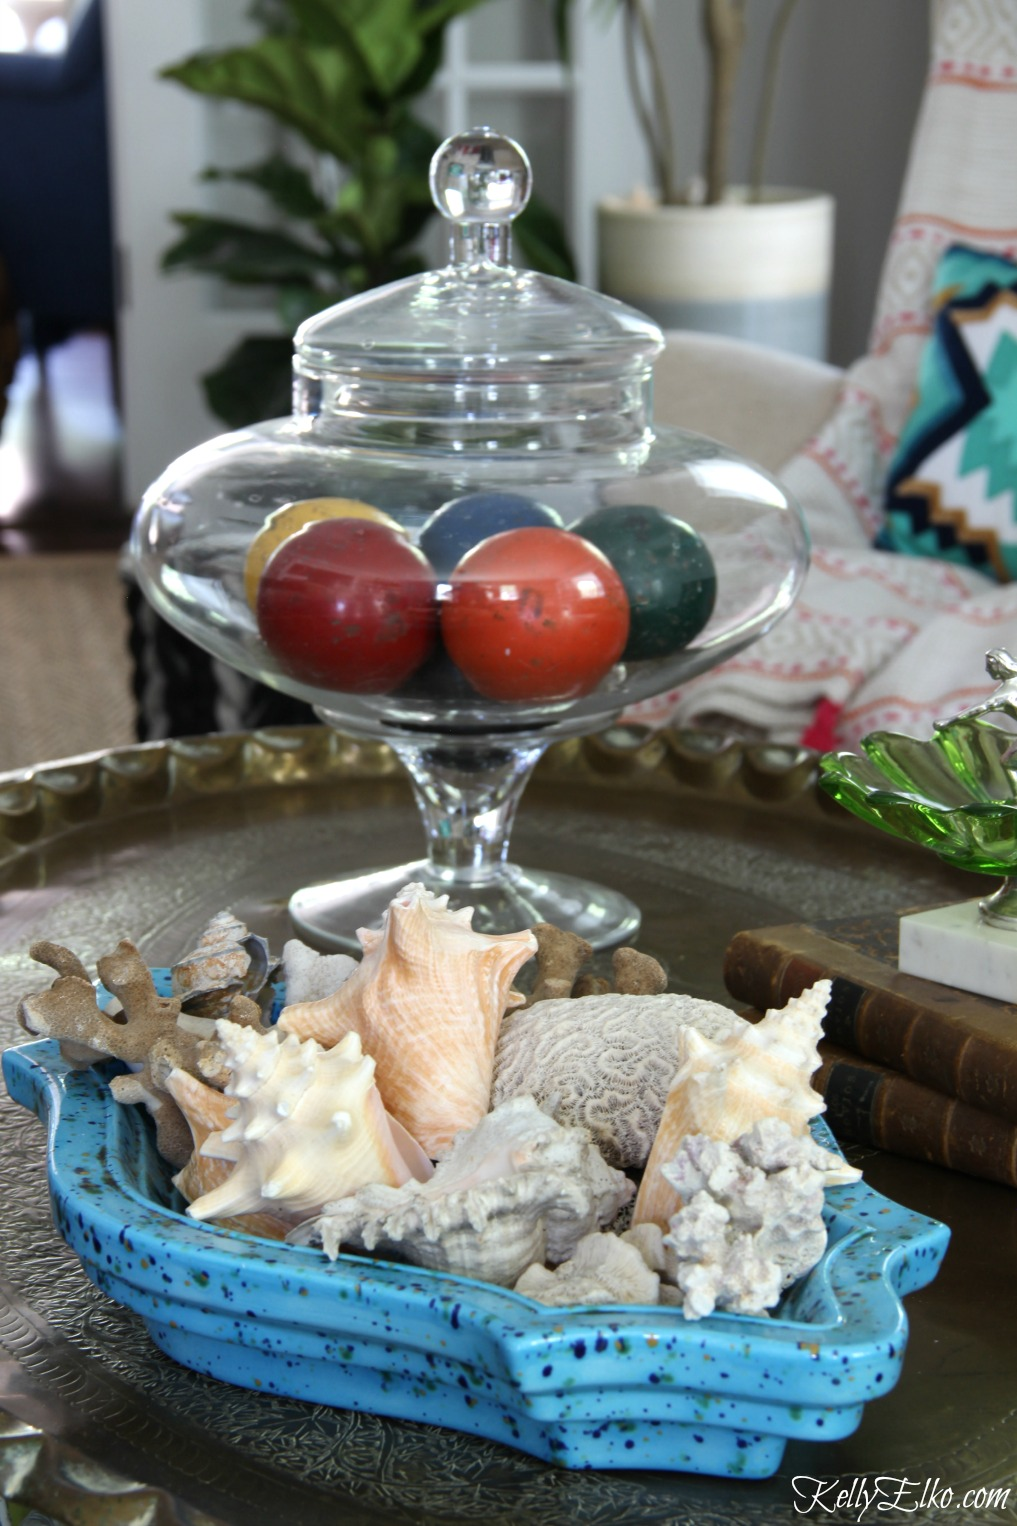 Vintage ashtray filled with shells and a jar of croquet balls makes a unique coffee table display kellyelko.com